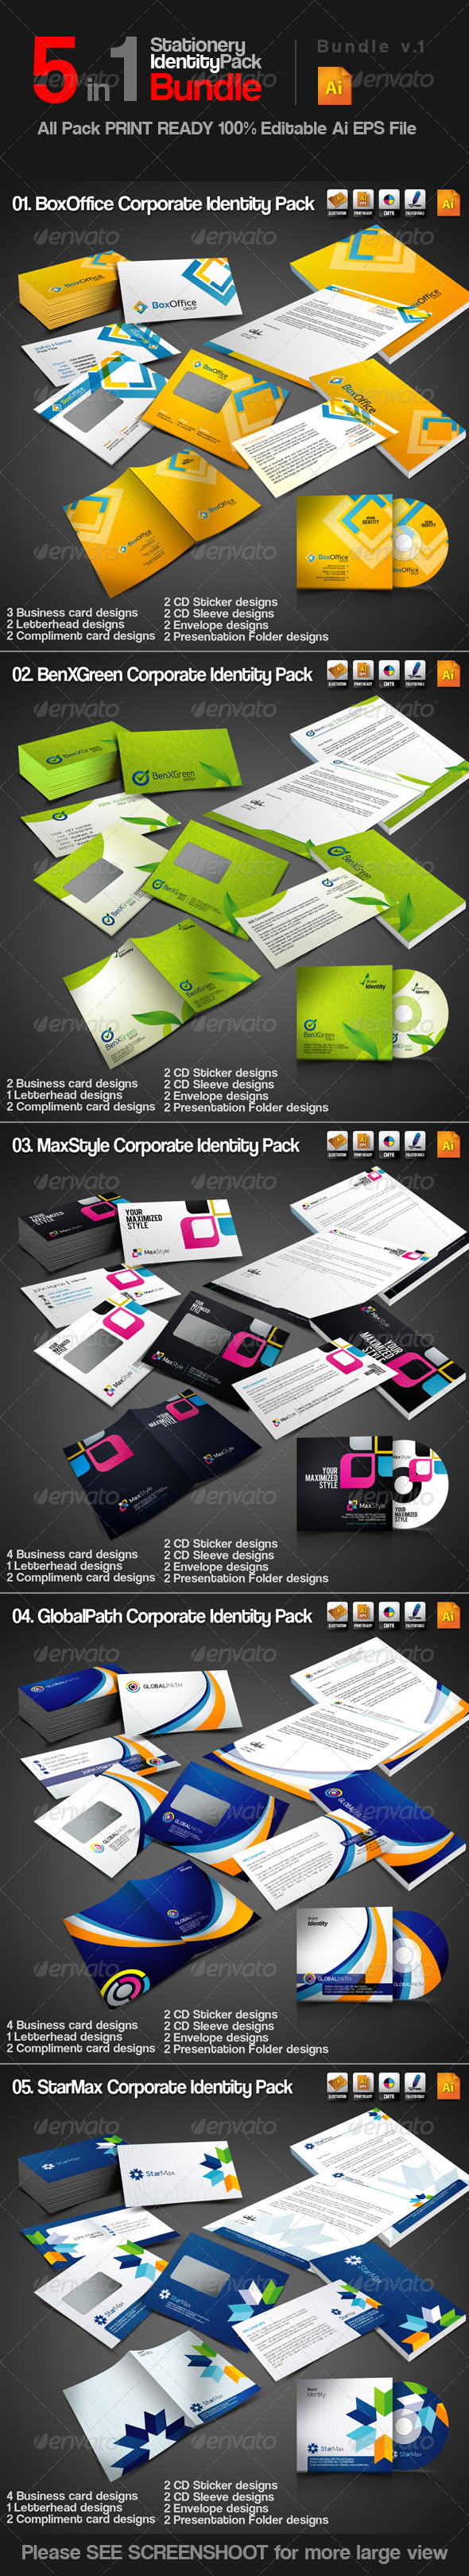 GraphicRiver 5 in 1 Stationery ID Pack Bundle v1 3361001